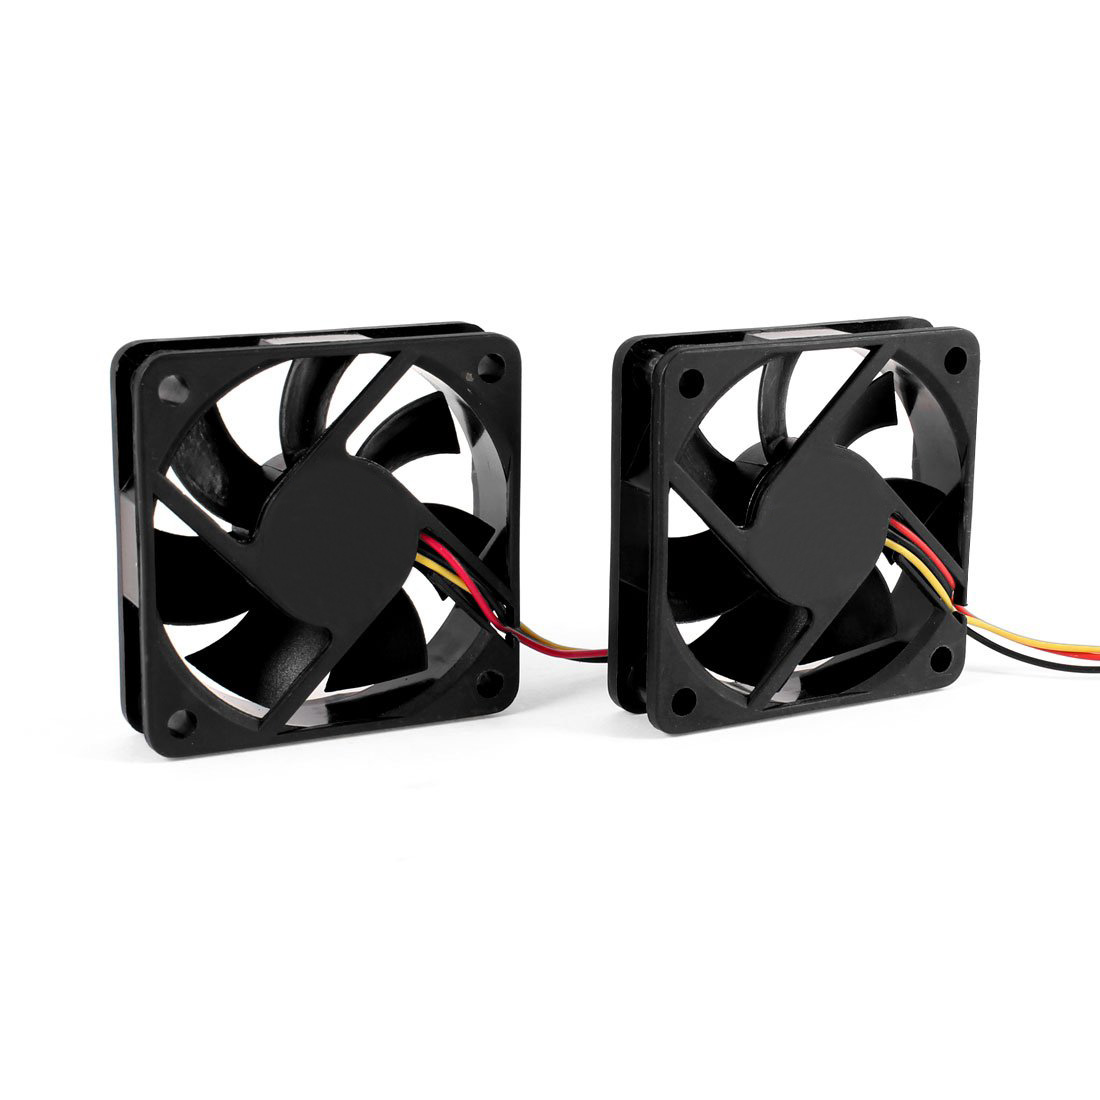 PROMOTION! Hot 2 PCS 60mm 6cm DC 12V 3 Pin Computer Case CPU Cooler Cooling Fan Black 2200rpm cpu quiet fan cooler cooling heatsink for intel lga775 1155 amd am2 3 l059 new hot